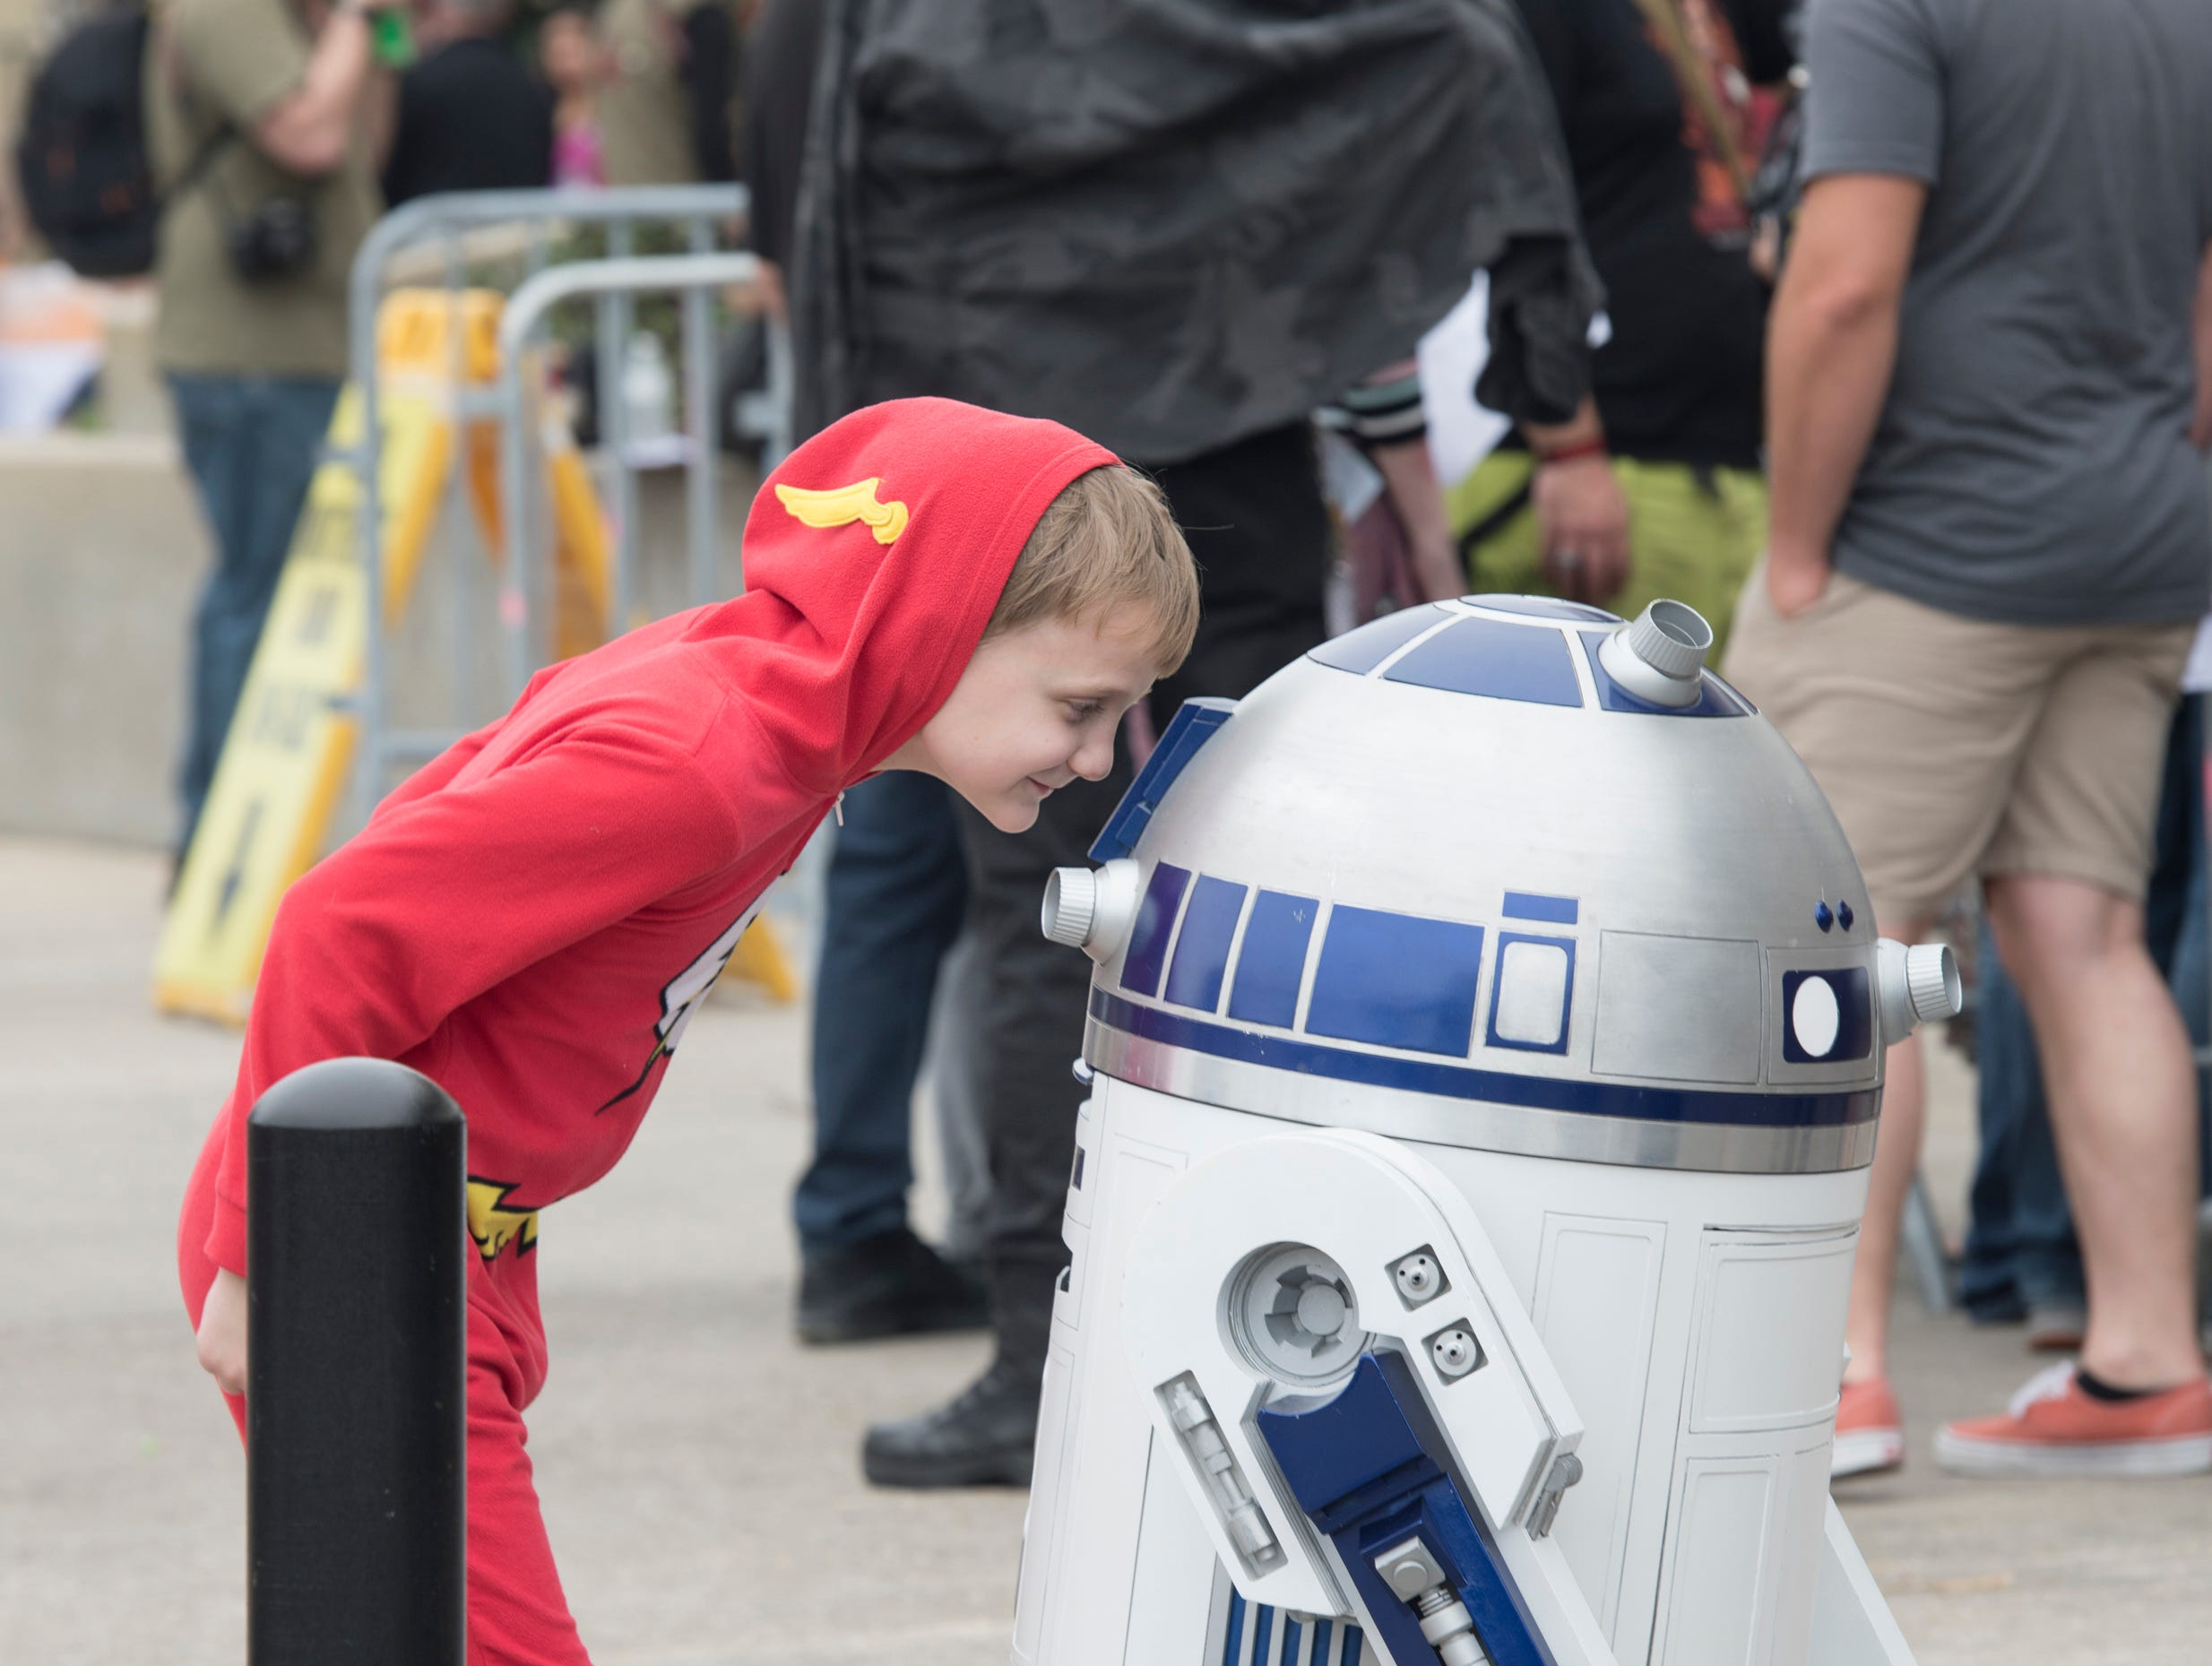 Nicholas Vintor, 9, of Loxley, Alabama, has a close encounter with a droid-kind during Pensacon at the Pensacola Bay Center on Friday, February 22, 2019.